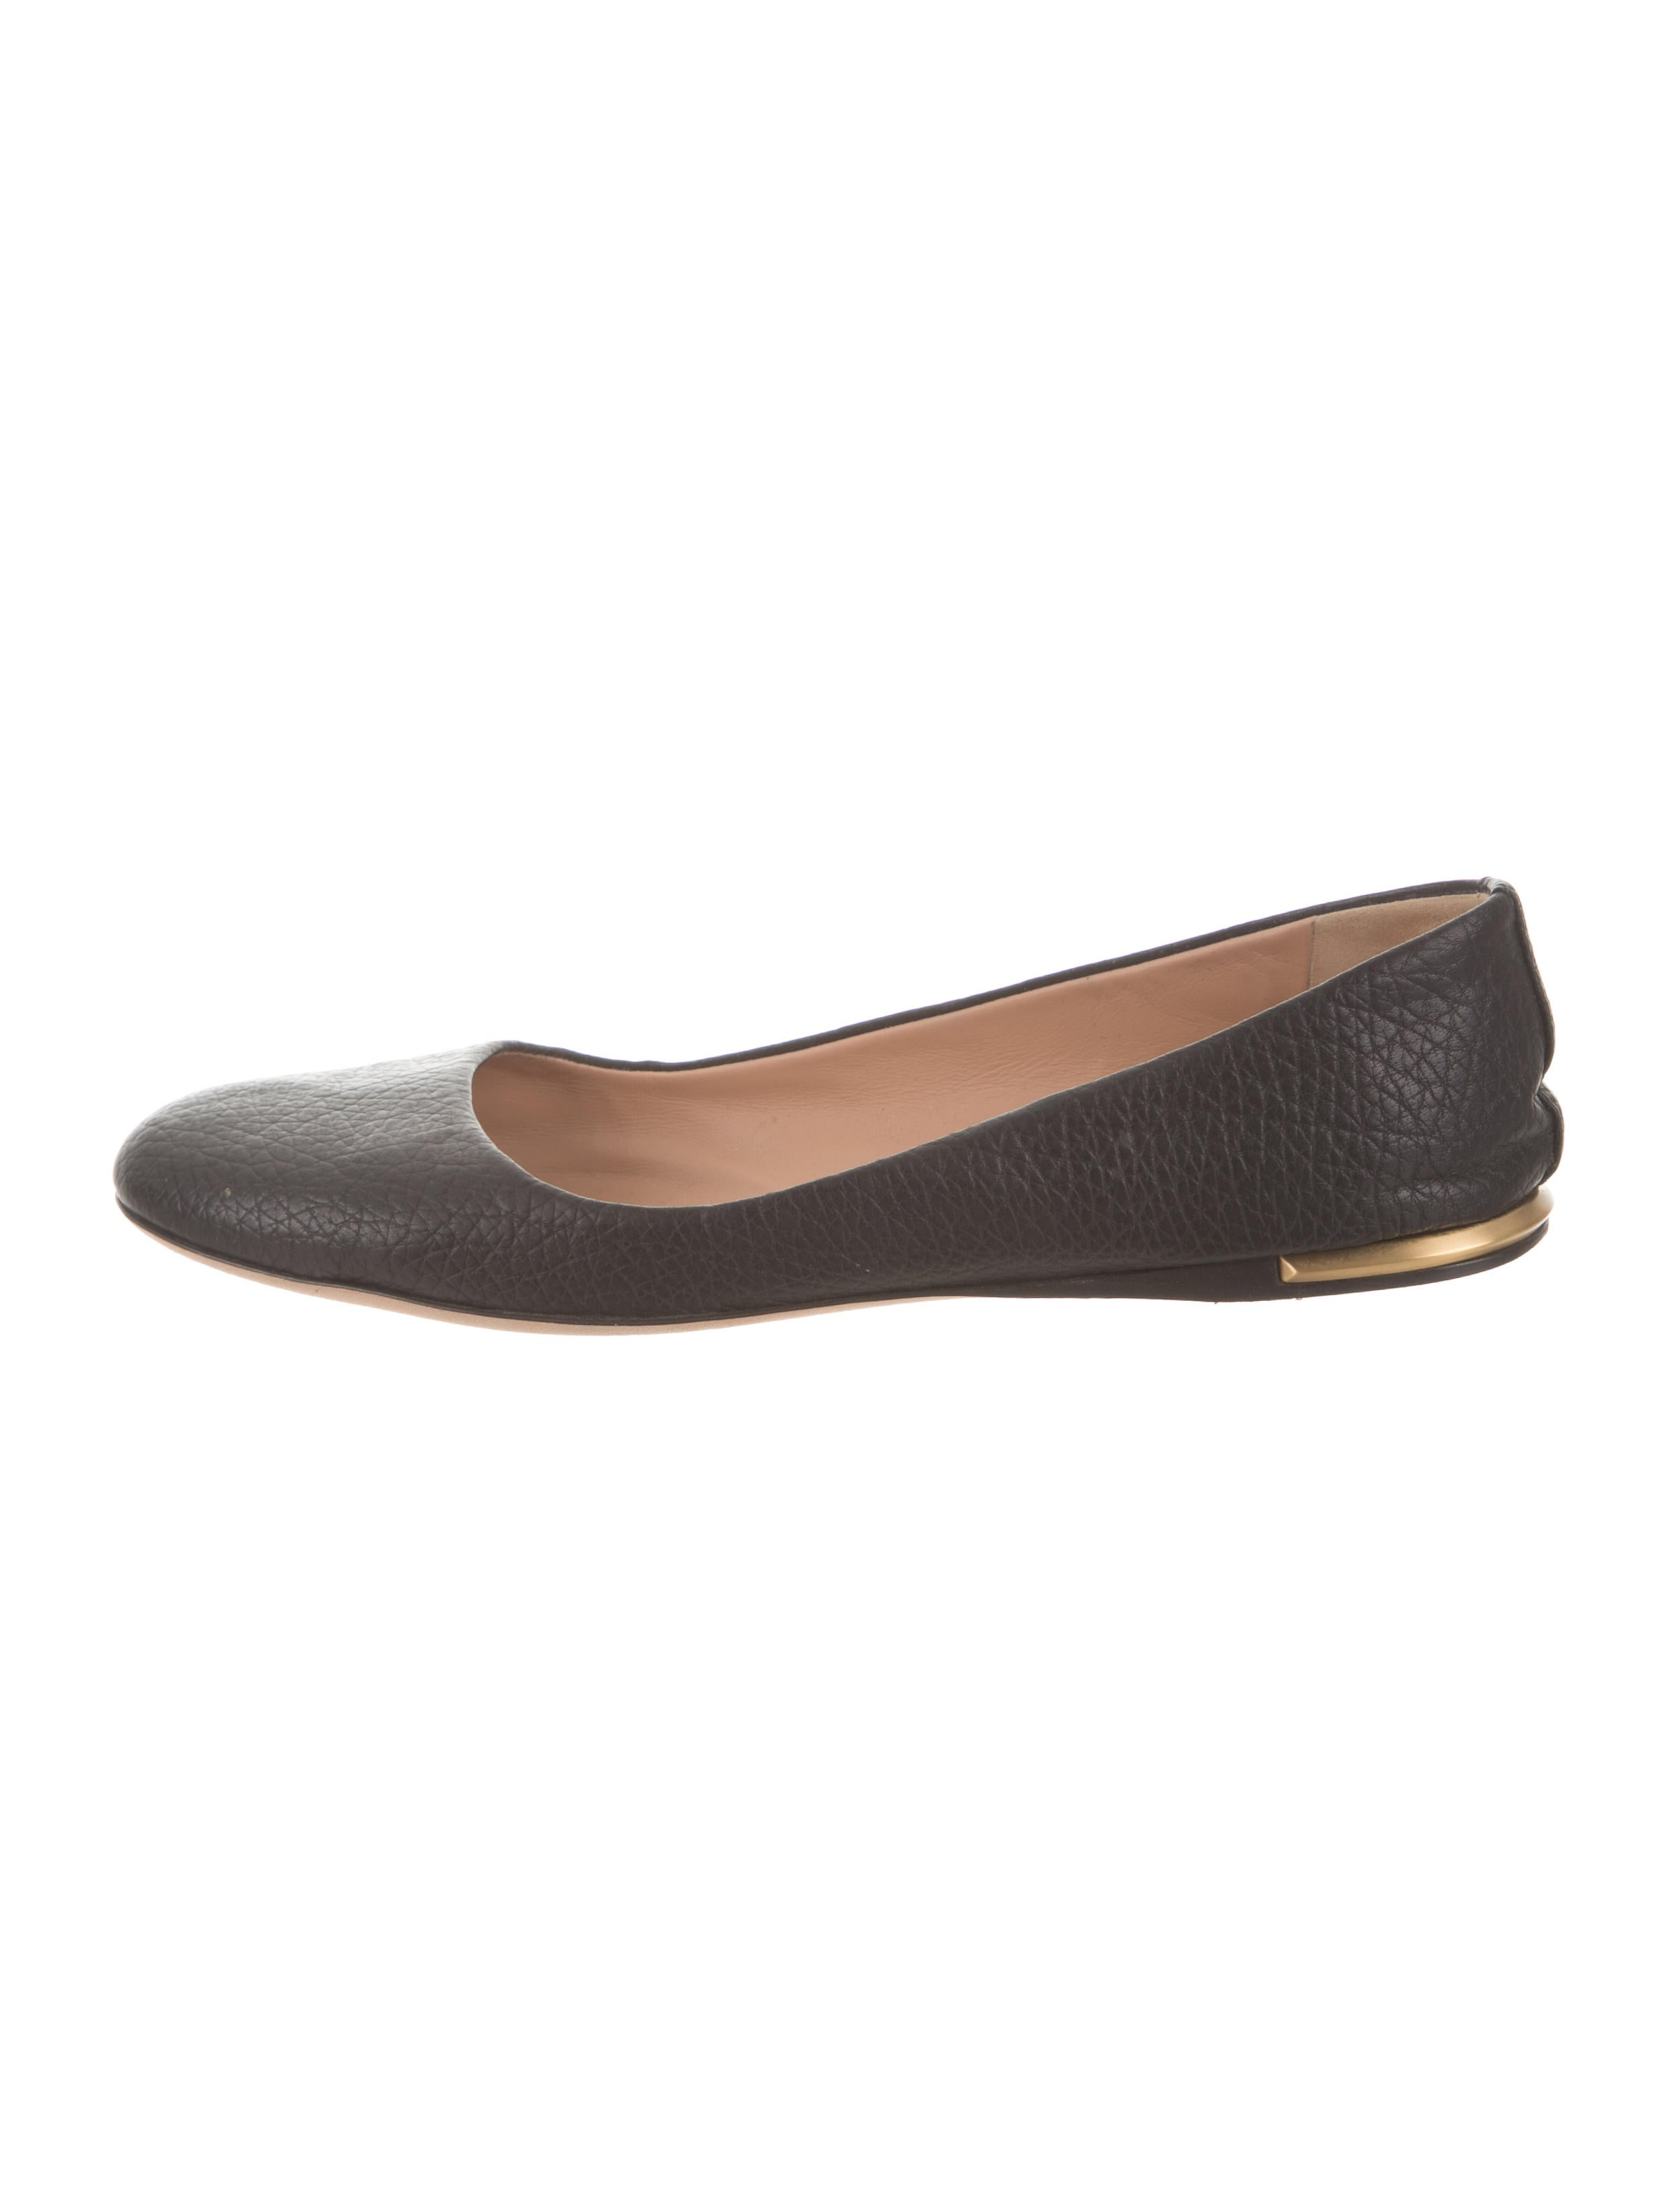 professional online outlet clearance Salvatore Ferragamo Roe Wingtip Flats w/ Tags original cheap price cheap excellent vp0lqAO